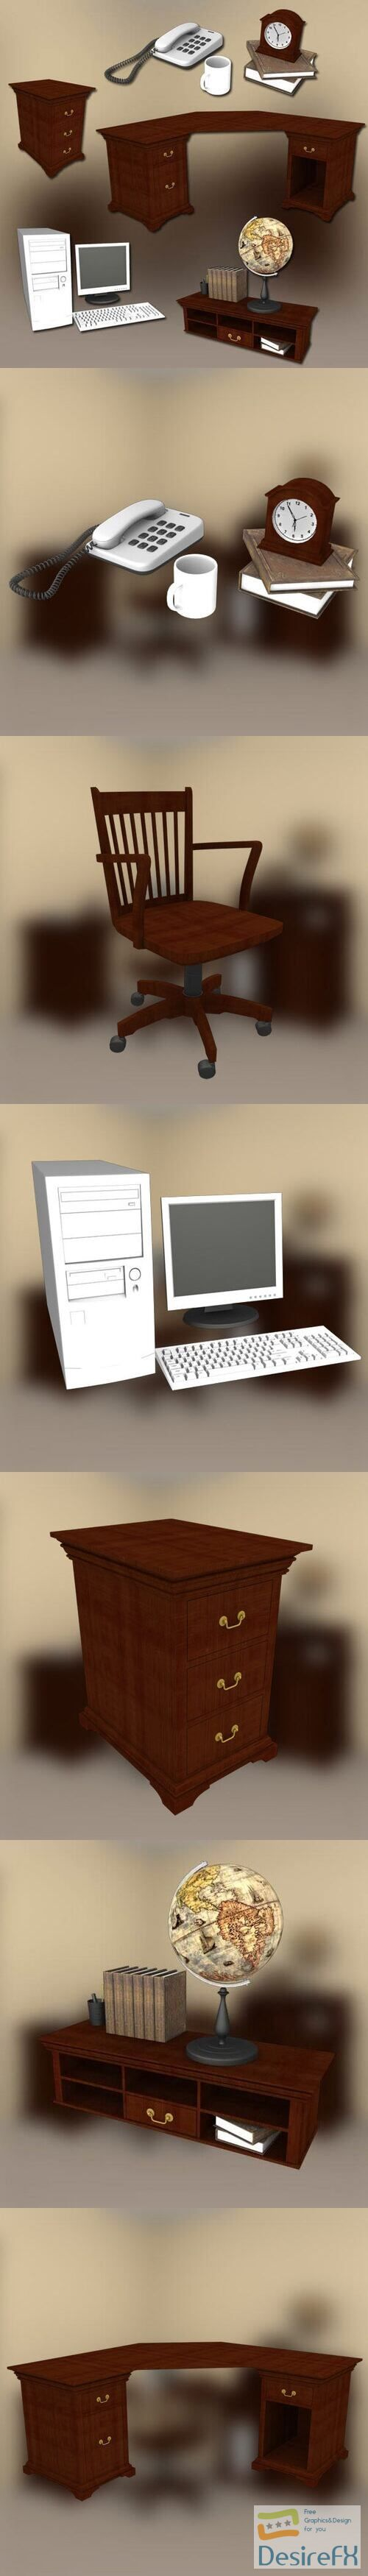 Home WorkPlace 3 Set 3D Model